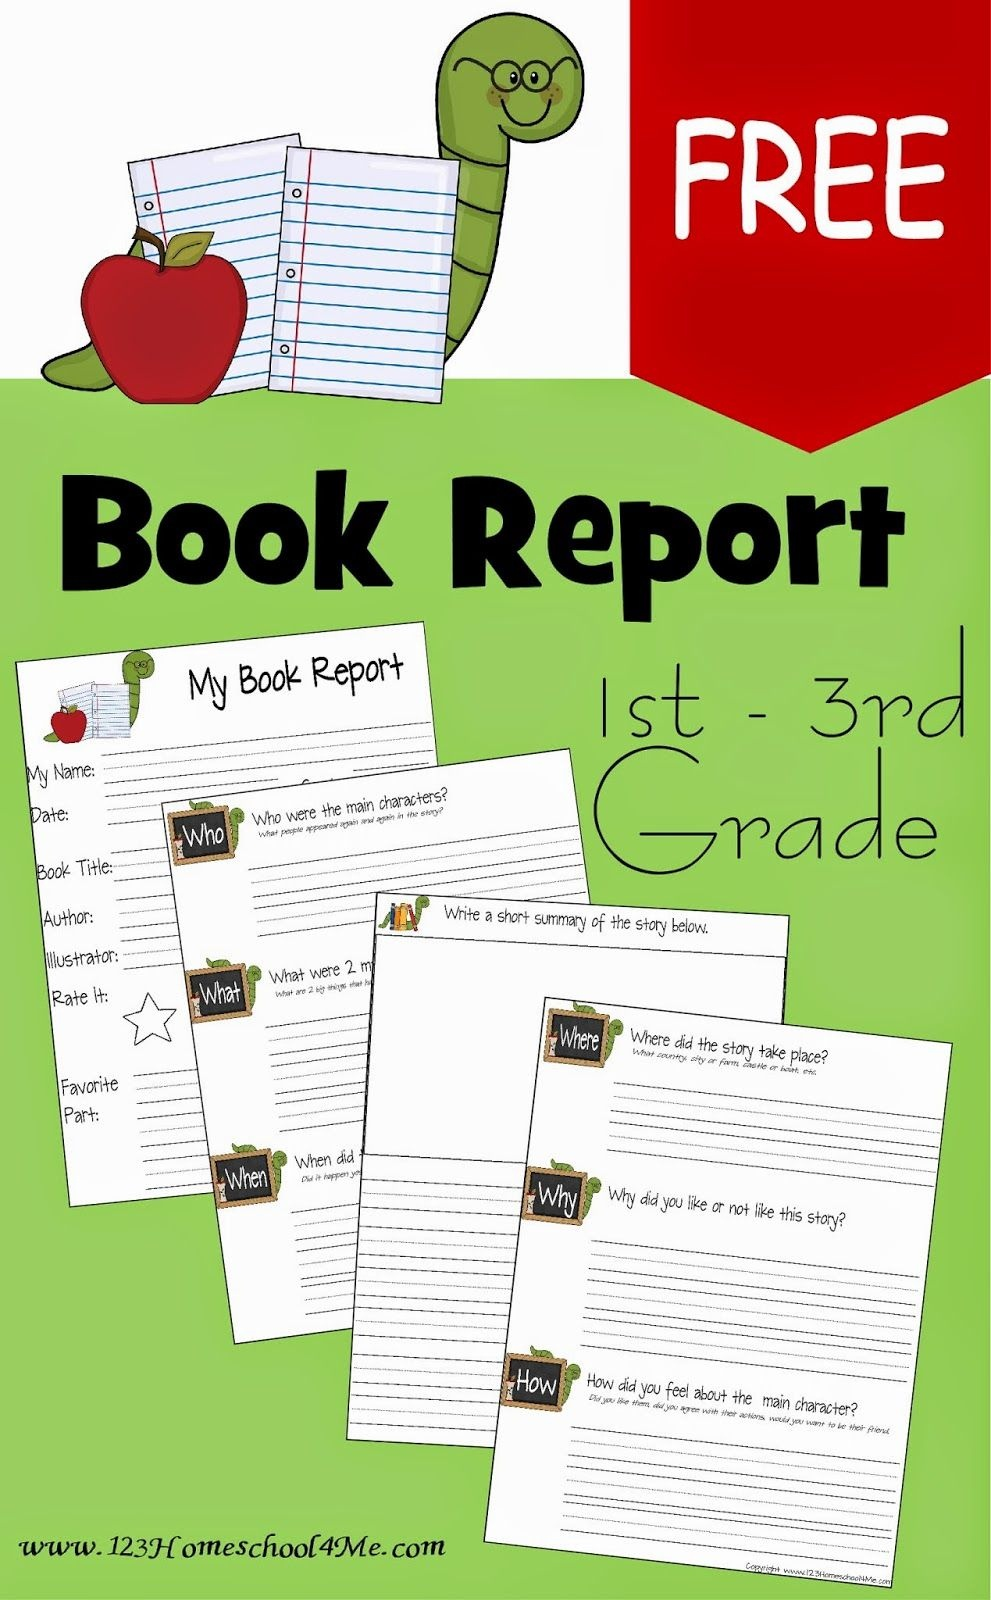 Free Book Report Template | Play Activities For Kids | 1St Grade - Free Printable Books For 5Th Graders